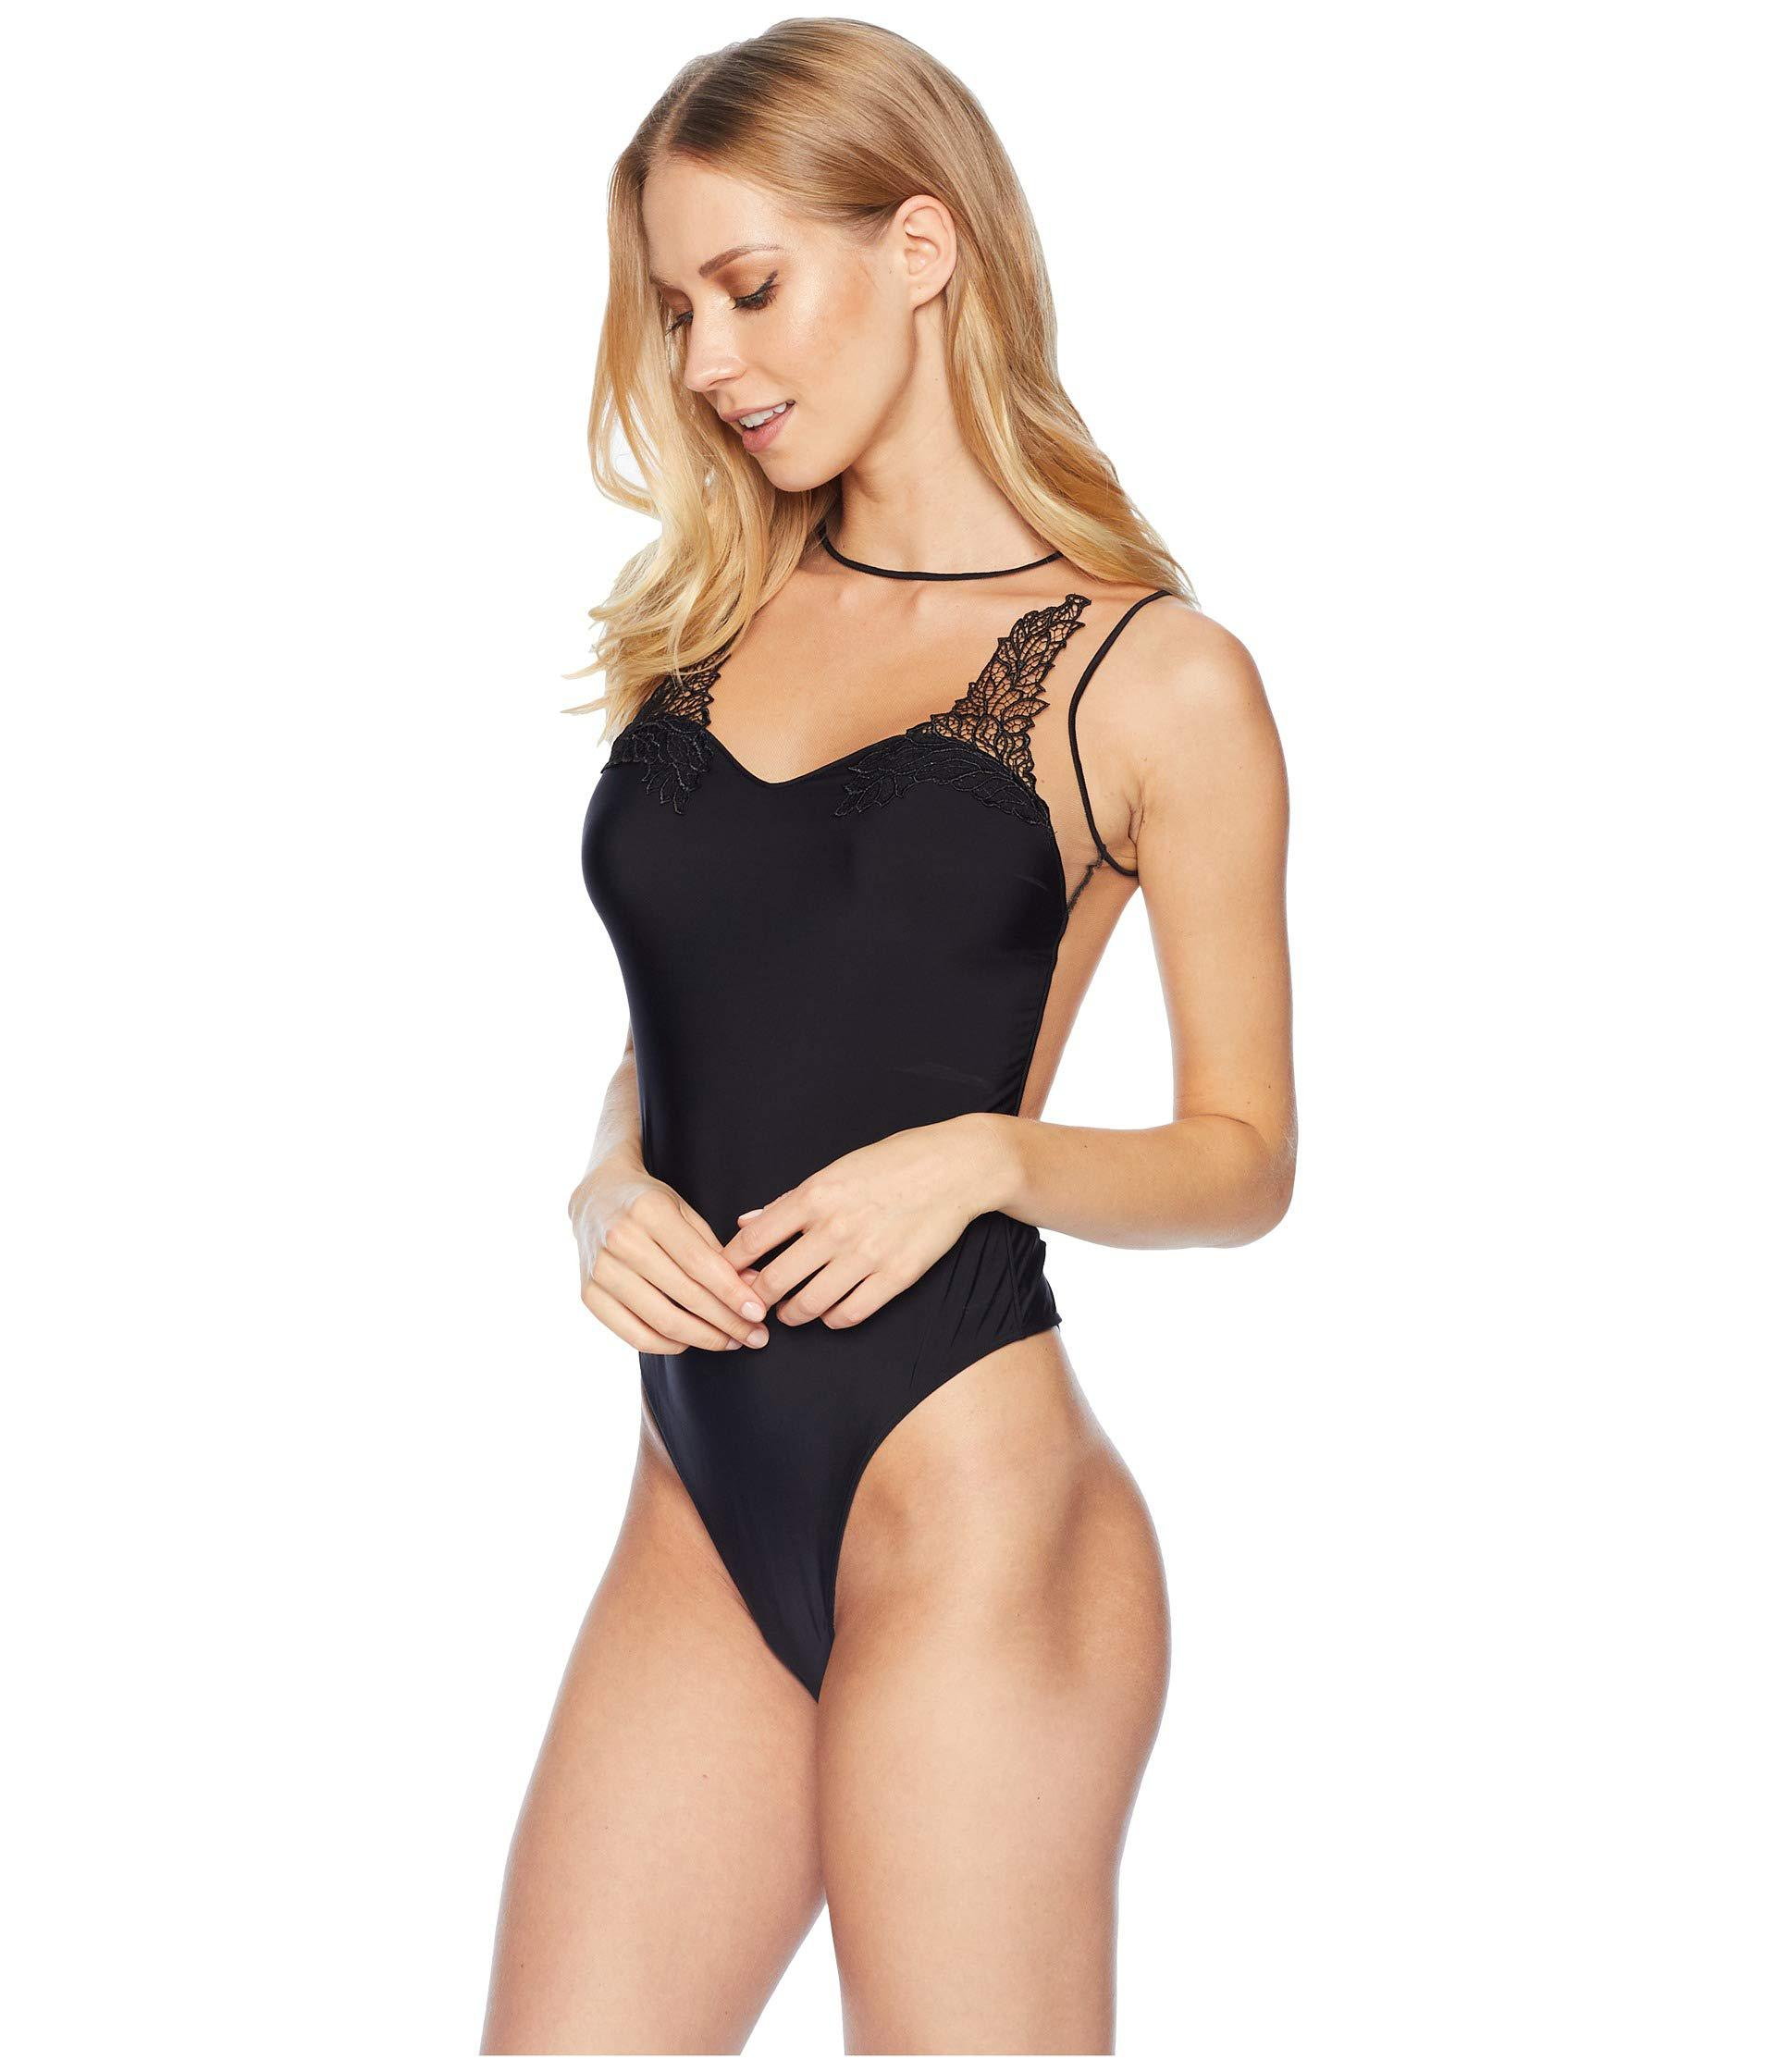 8ae7ccece9 Lyst - Felina Giselle Thong Lace Applique Bodysuit in Black - Save 50%